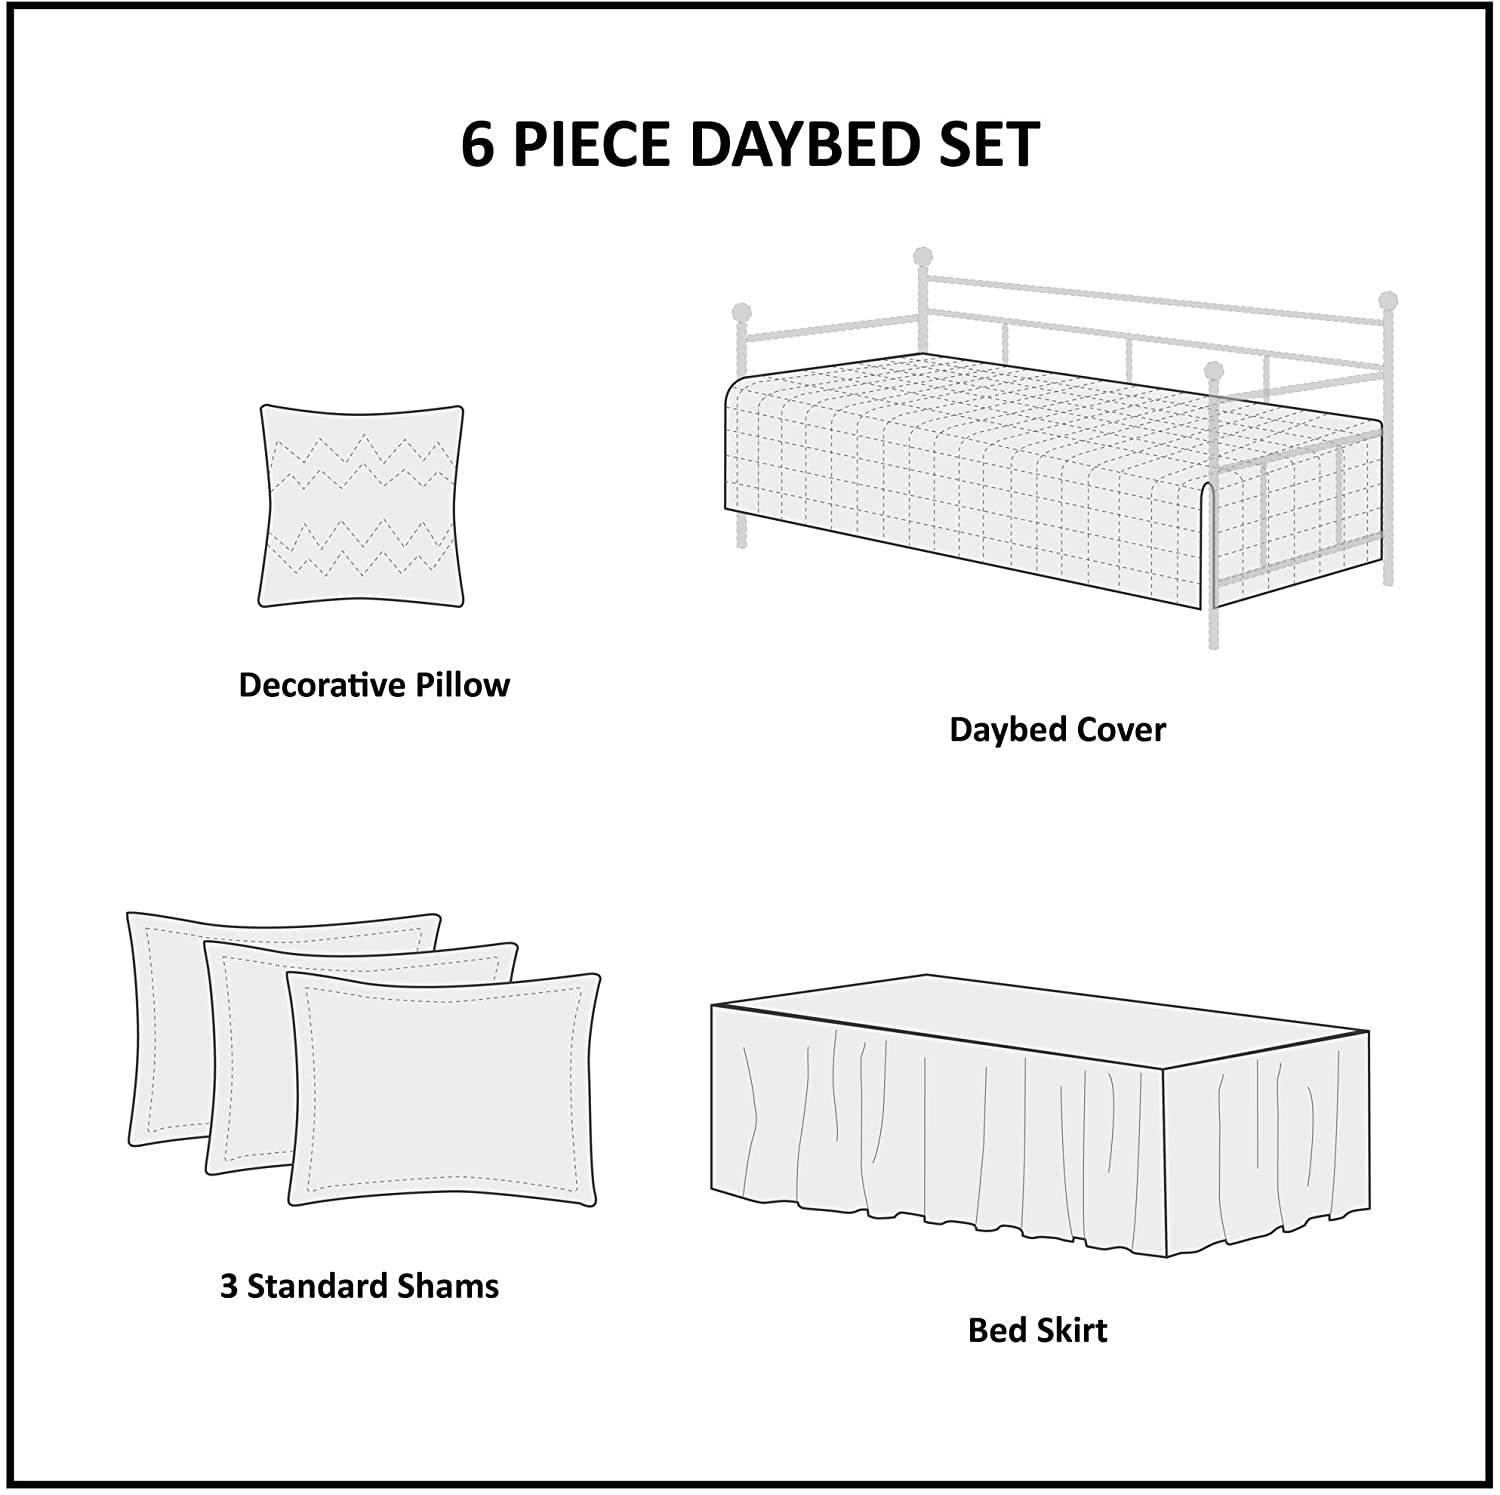 Madison Park Quebec Daybed Size Quilt Bedding Set 6 Piece Bedding Quilt Coverlets Ultra Soft Microfiber Bed Quilts Quilted Coverlet Damask Grey